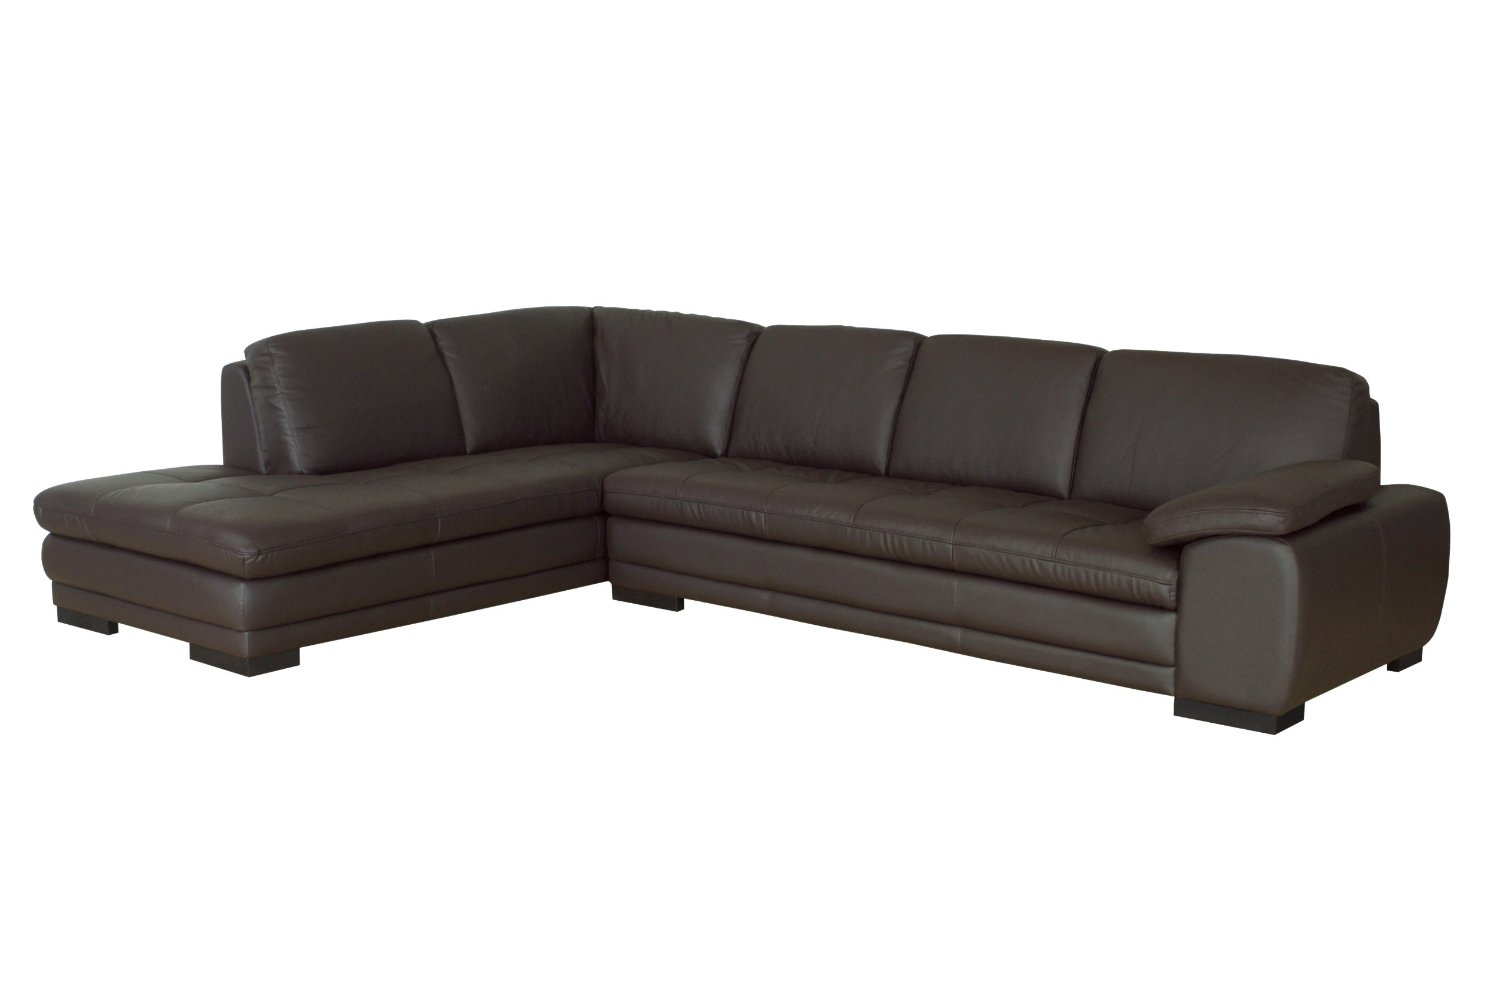 Leather Sectional Furniture Guide Leather Sofaorg : Leather Sectional 21 from www.leather-sofa.org size 1500 x 1000 jpeg 55kB